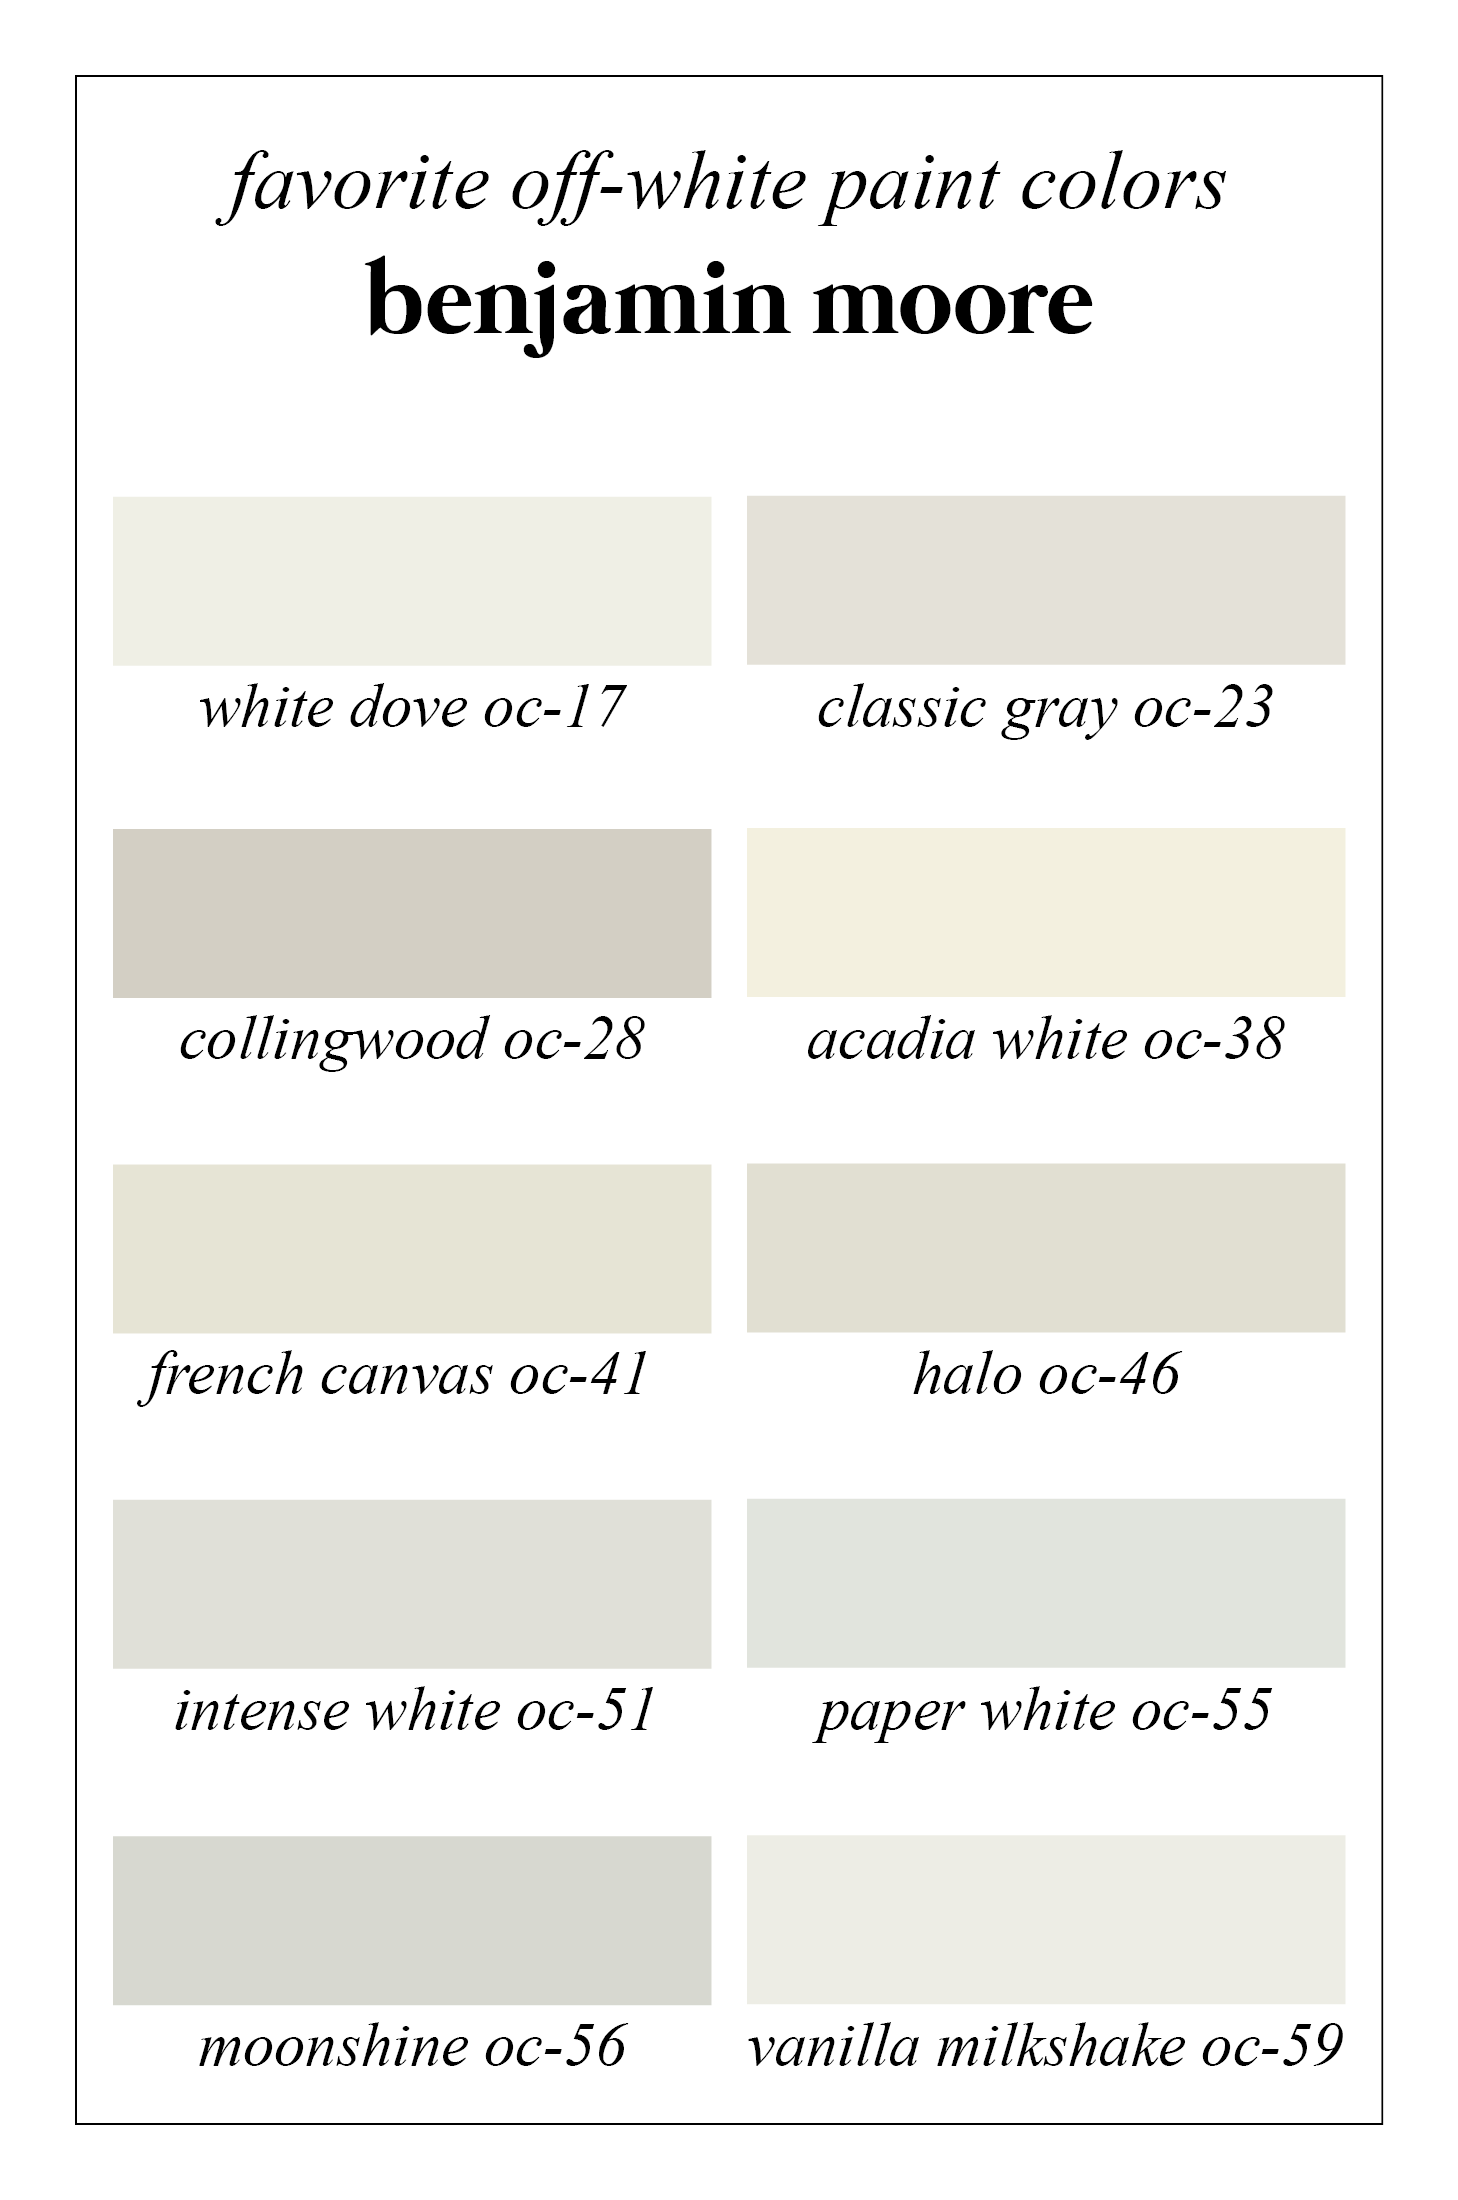 White Paint Colors Favorite Offwhite Benjamin Moore Paint Colors White Dove